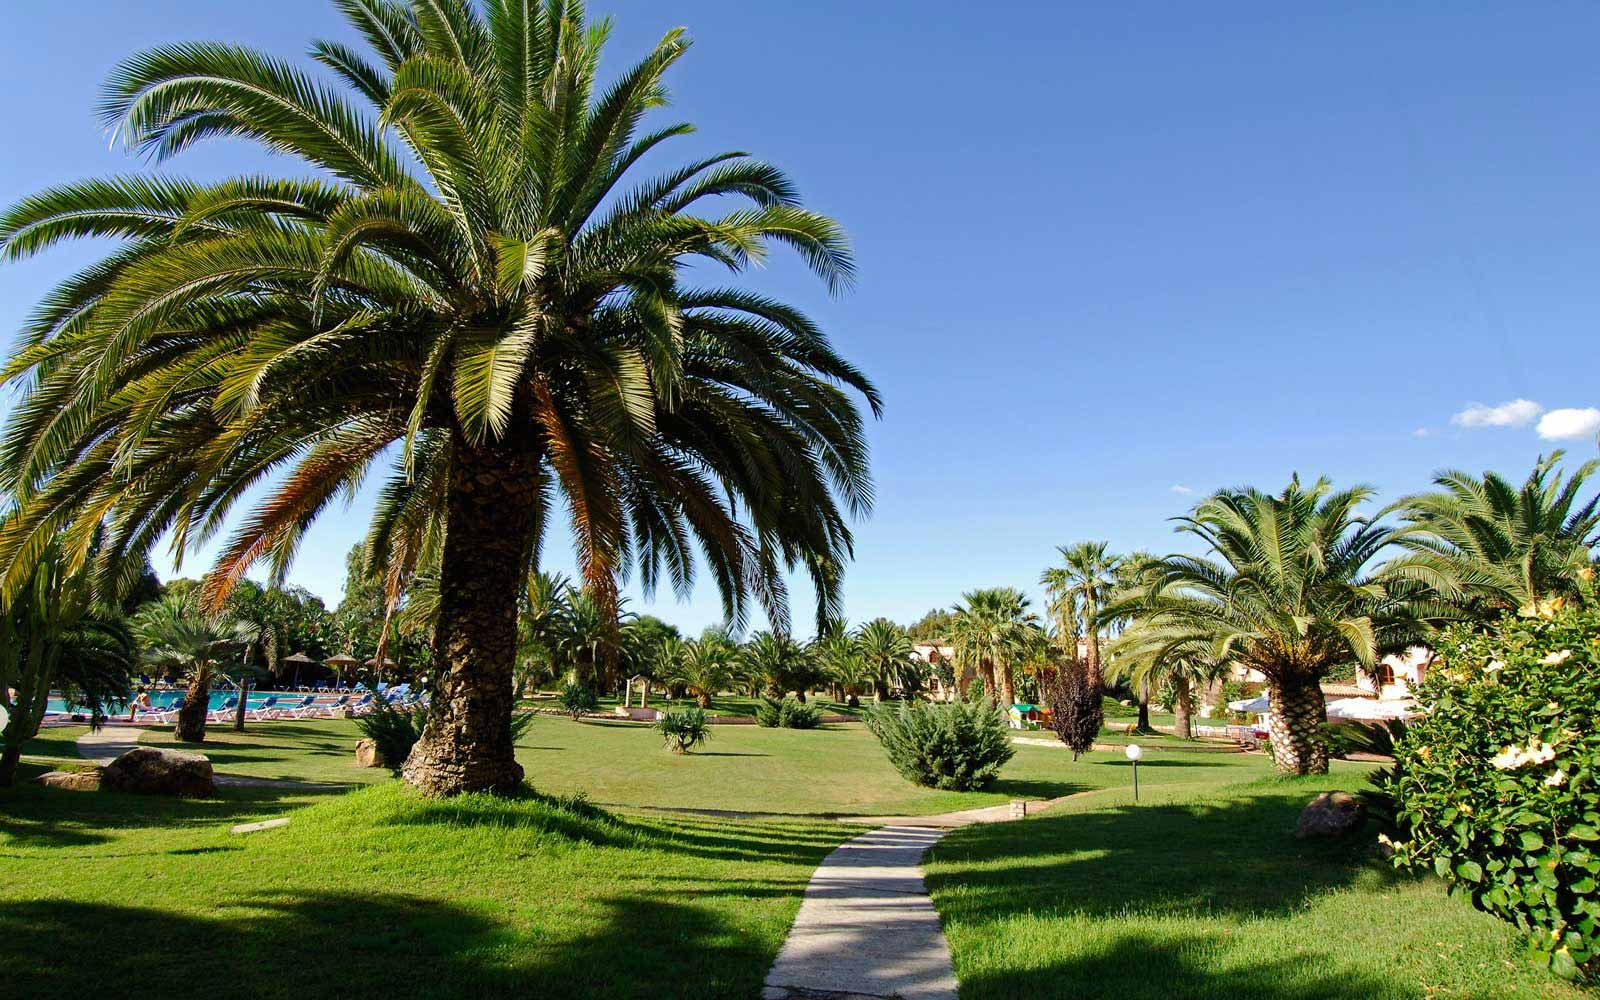 Park View at Residence Baia delle Palme